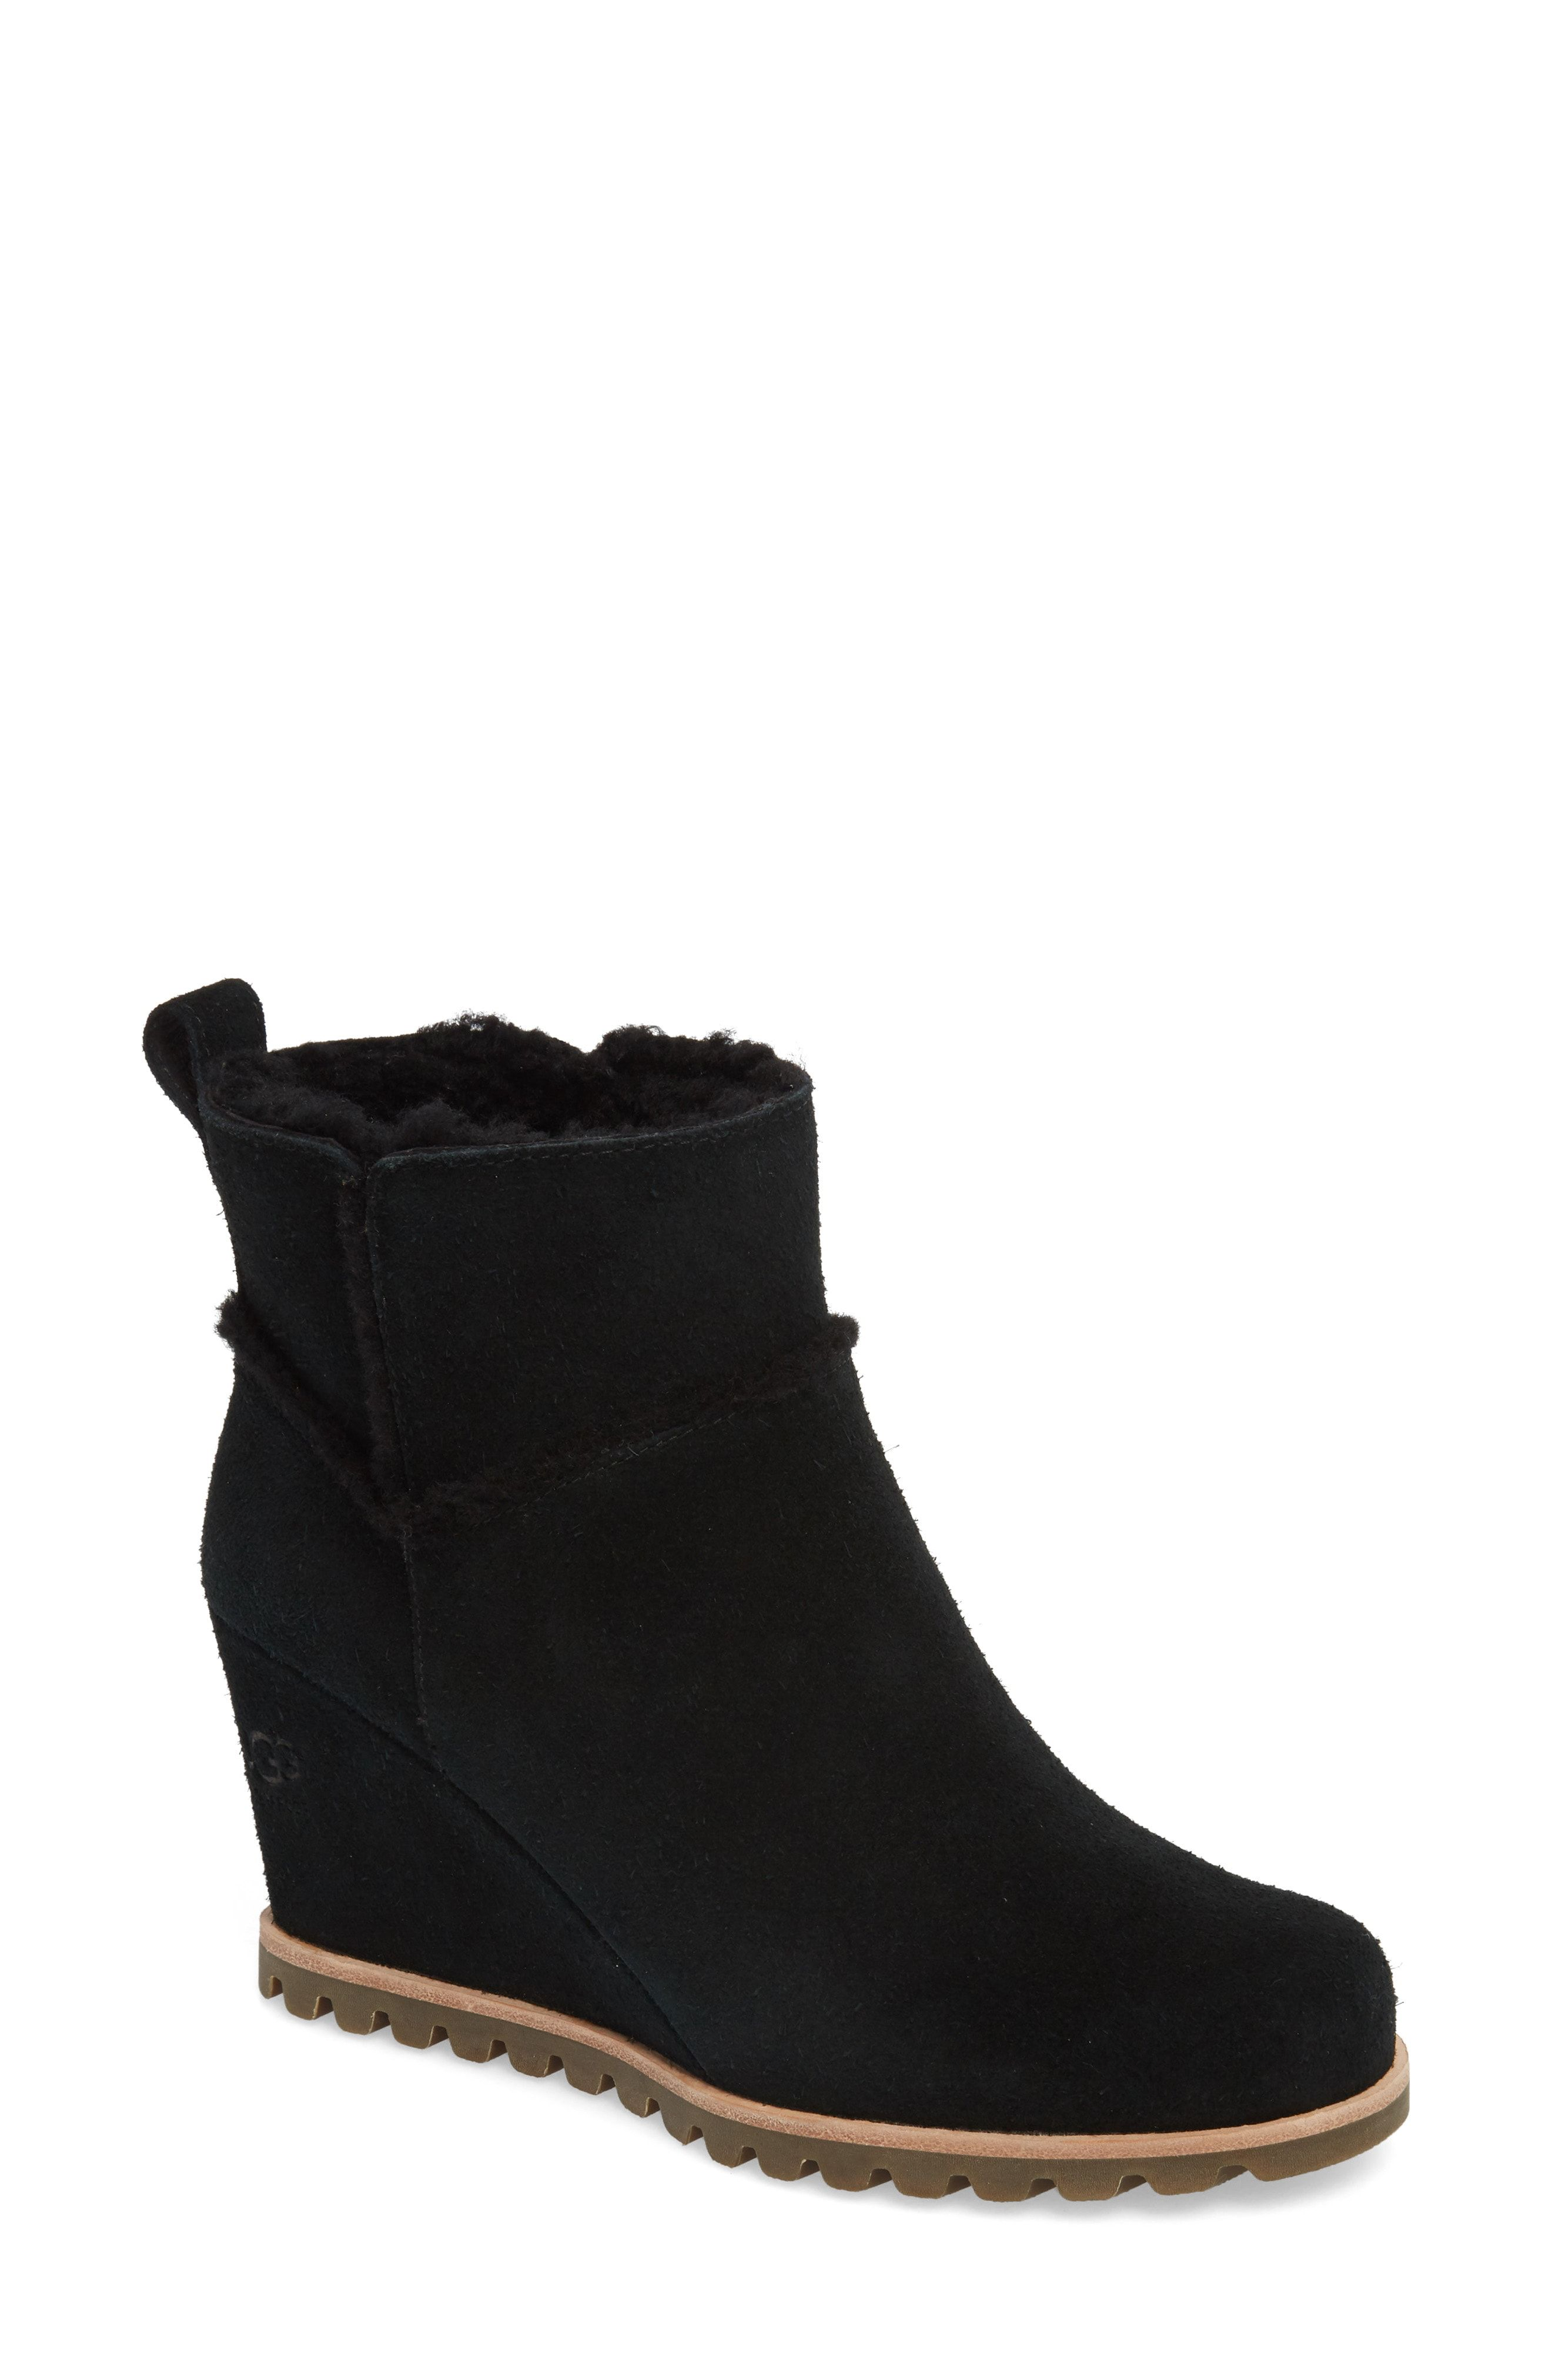 b9259eca0f2 UGG® Marte Waterproof Wedge Bootie available at  Nordstrom ...